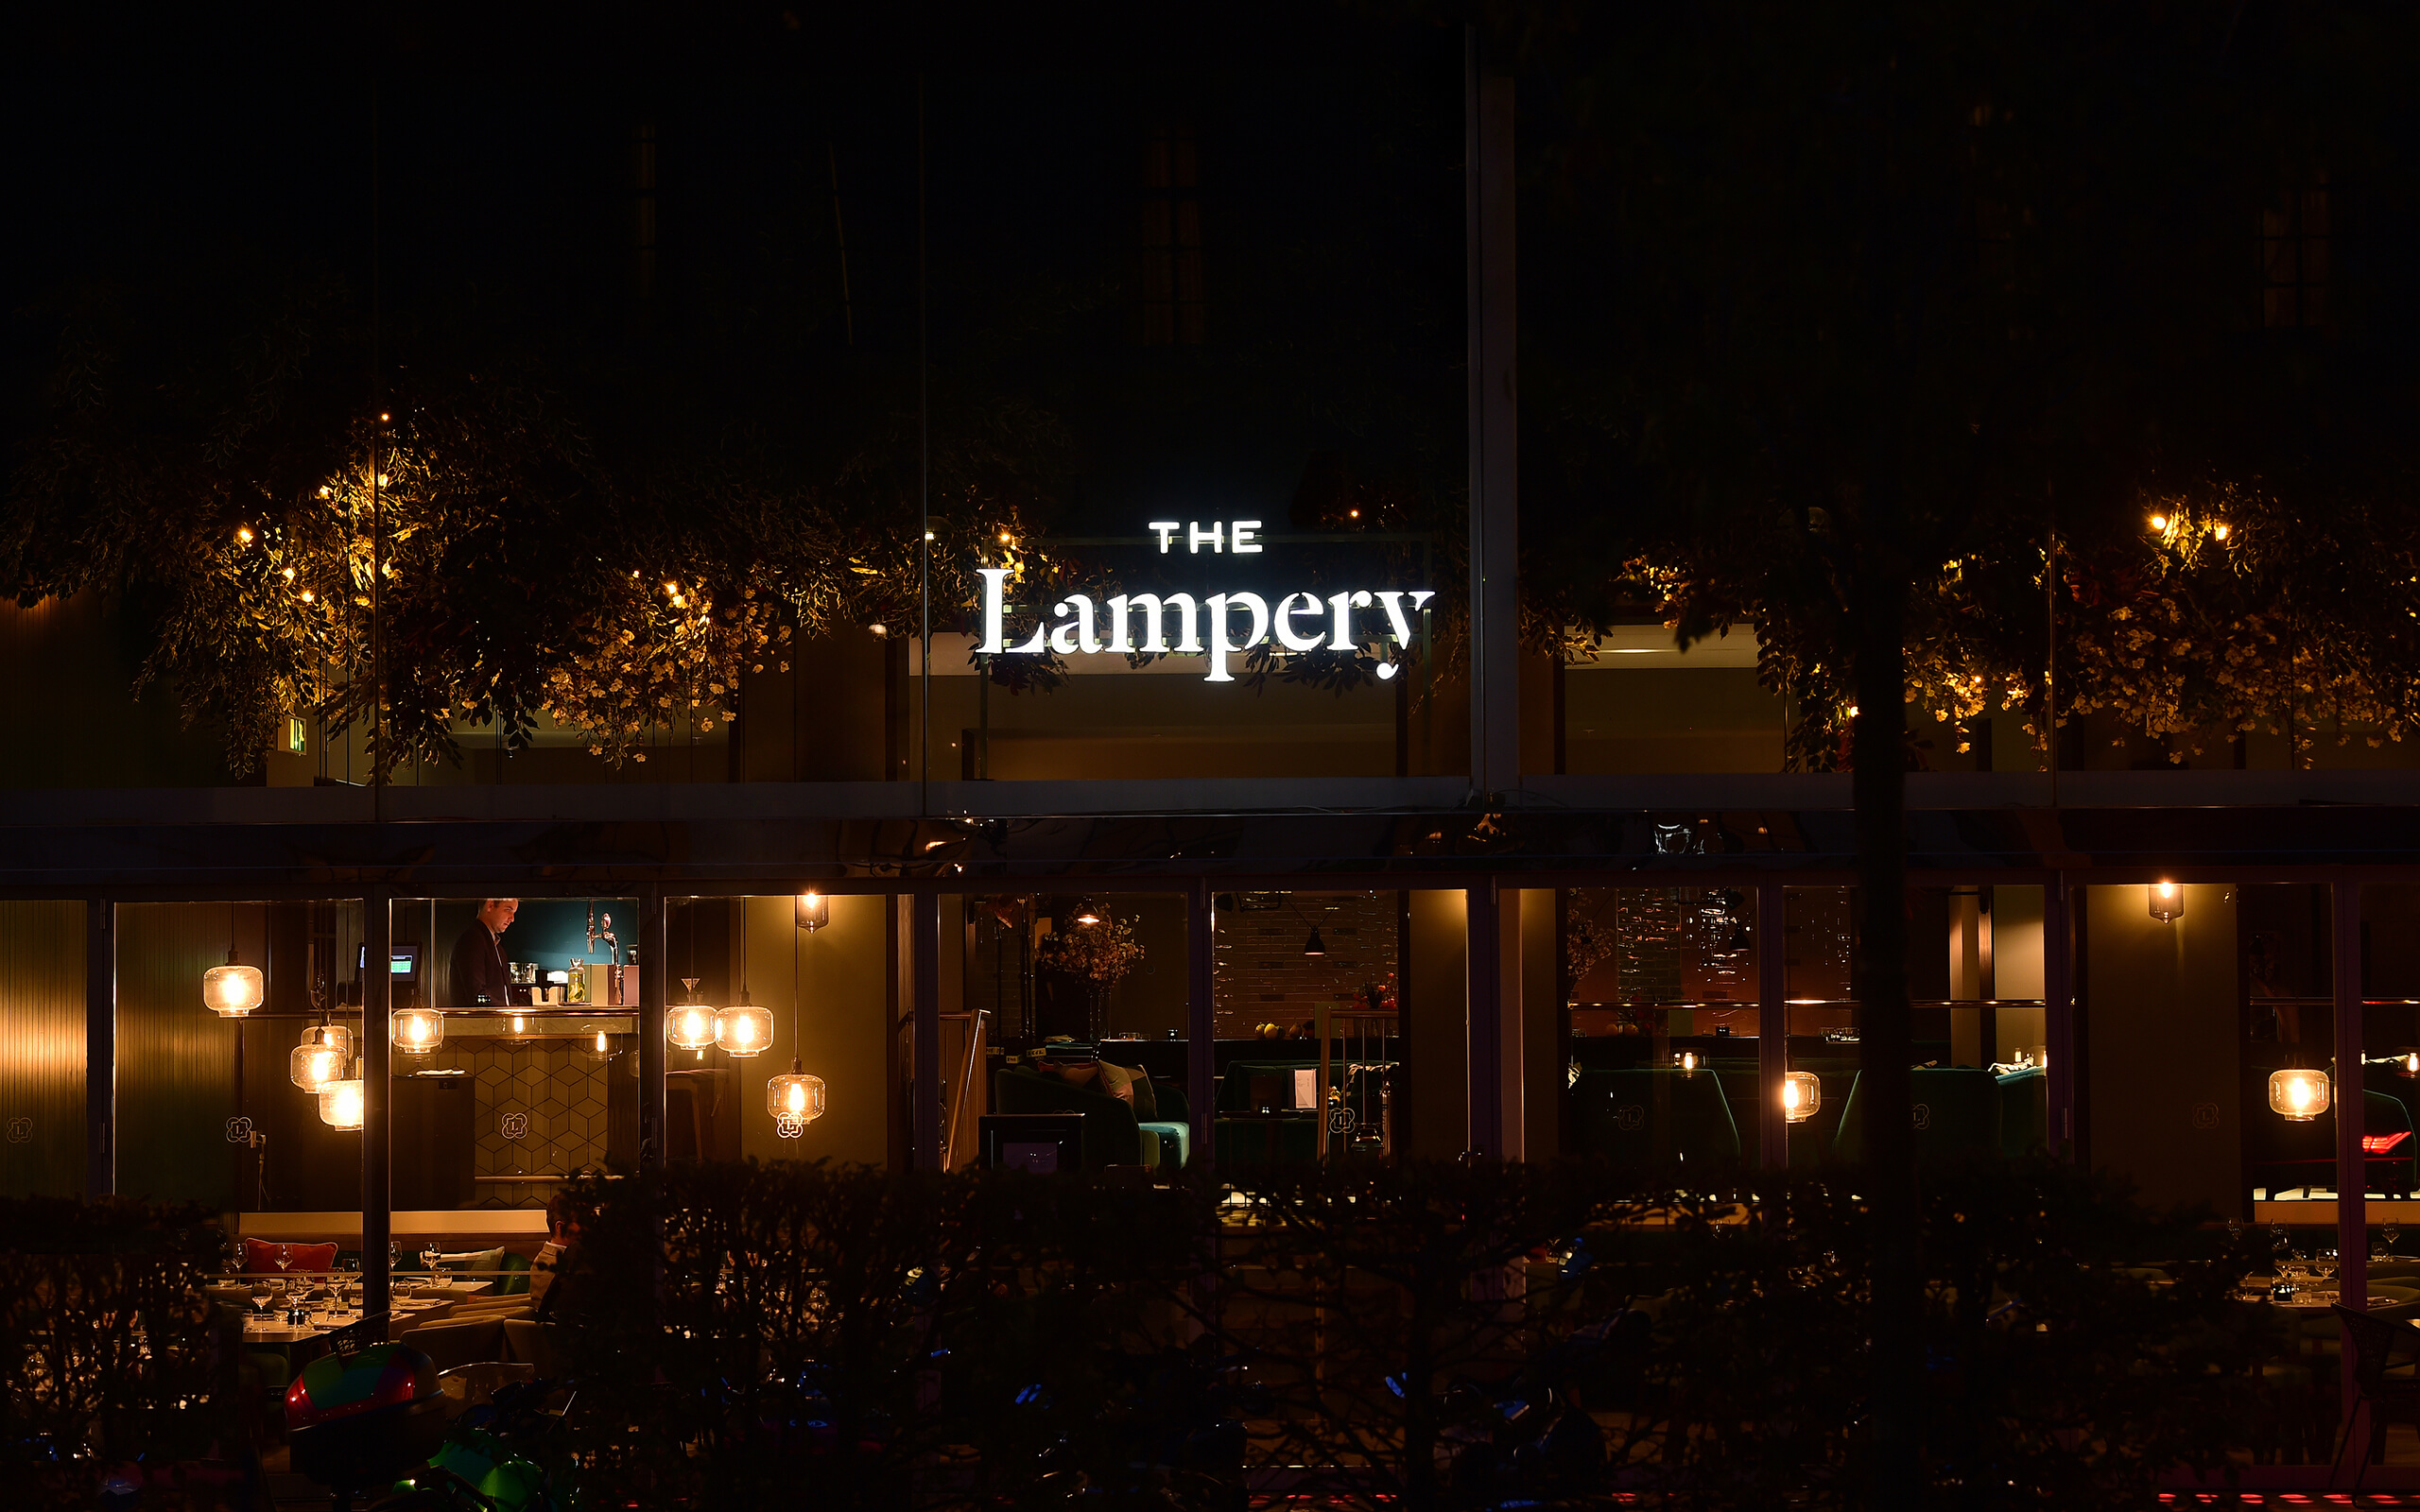 The Lampery signage